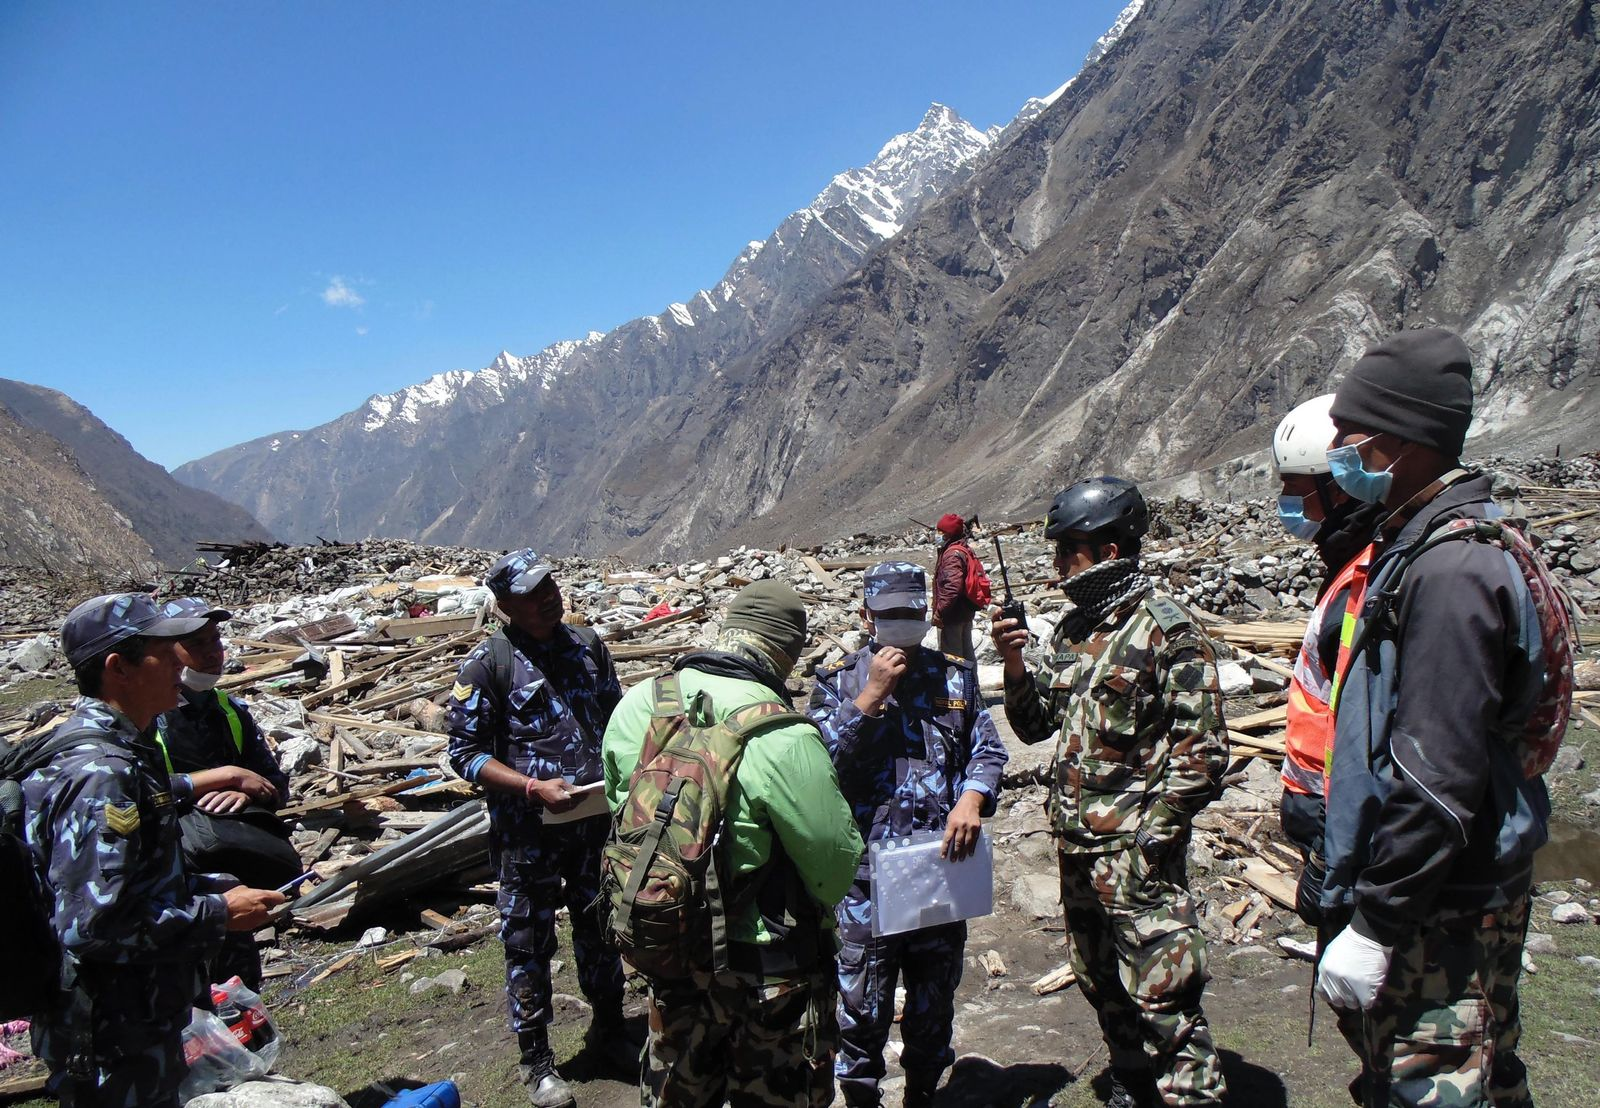 Nepal Earthquake Aftermath in Langtang